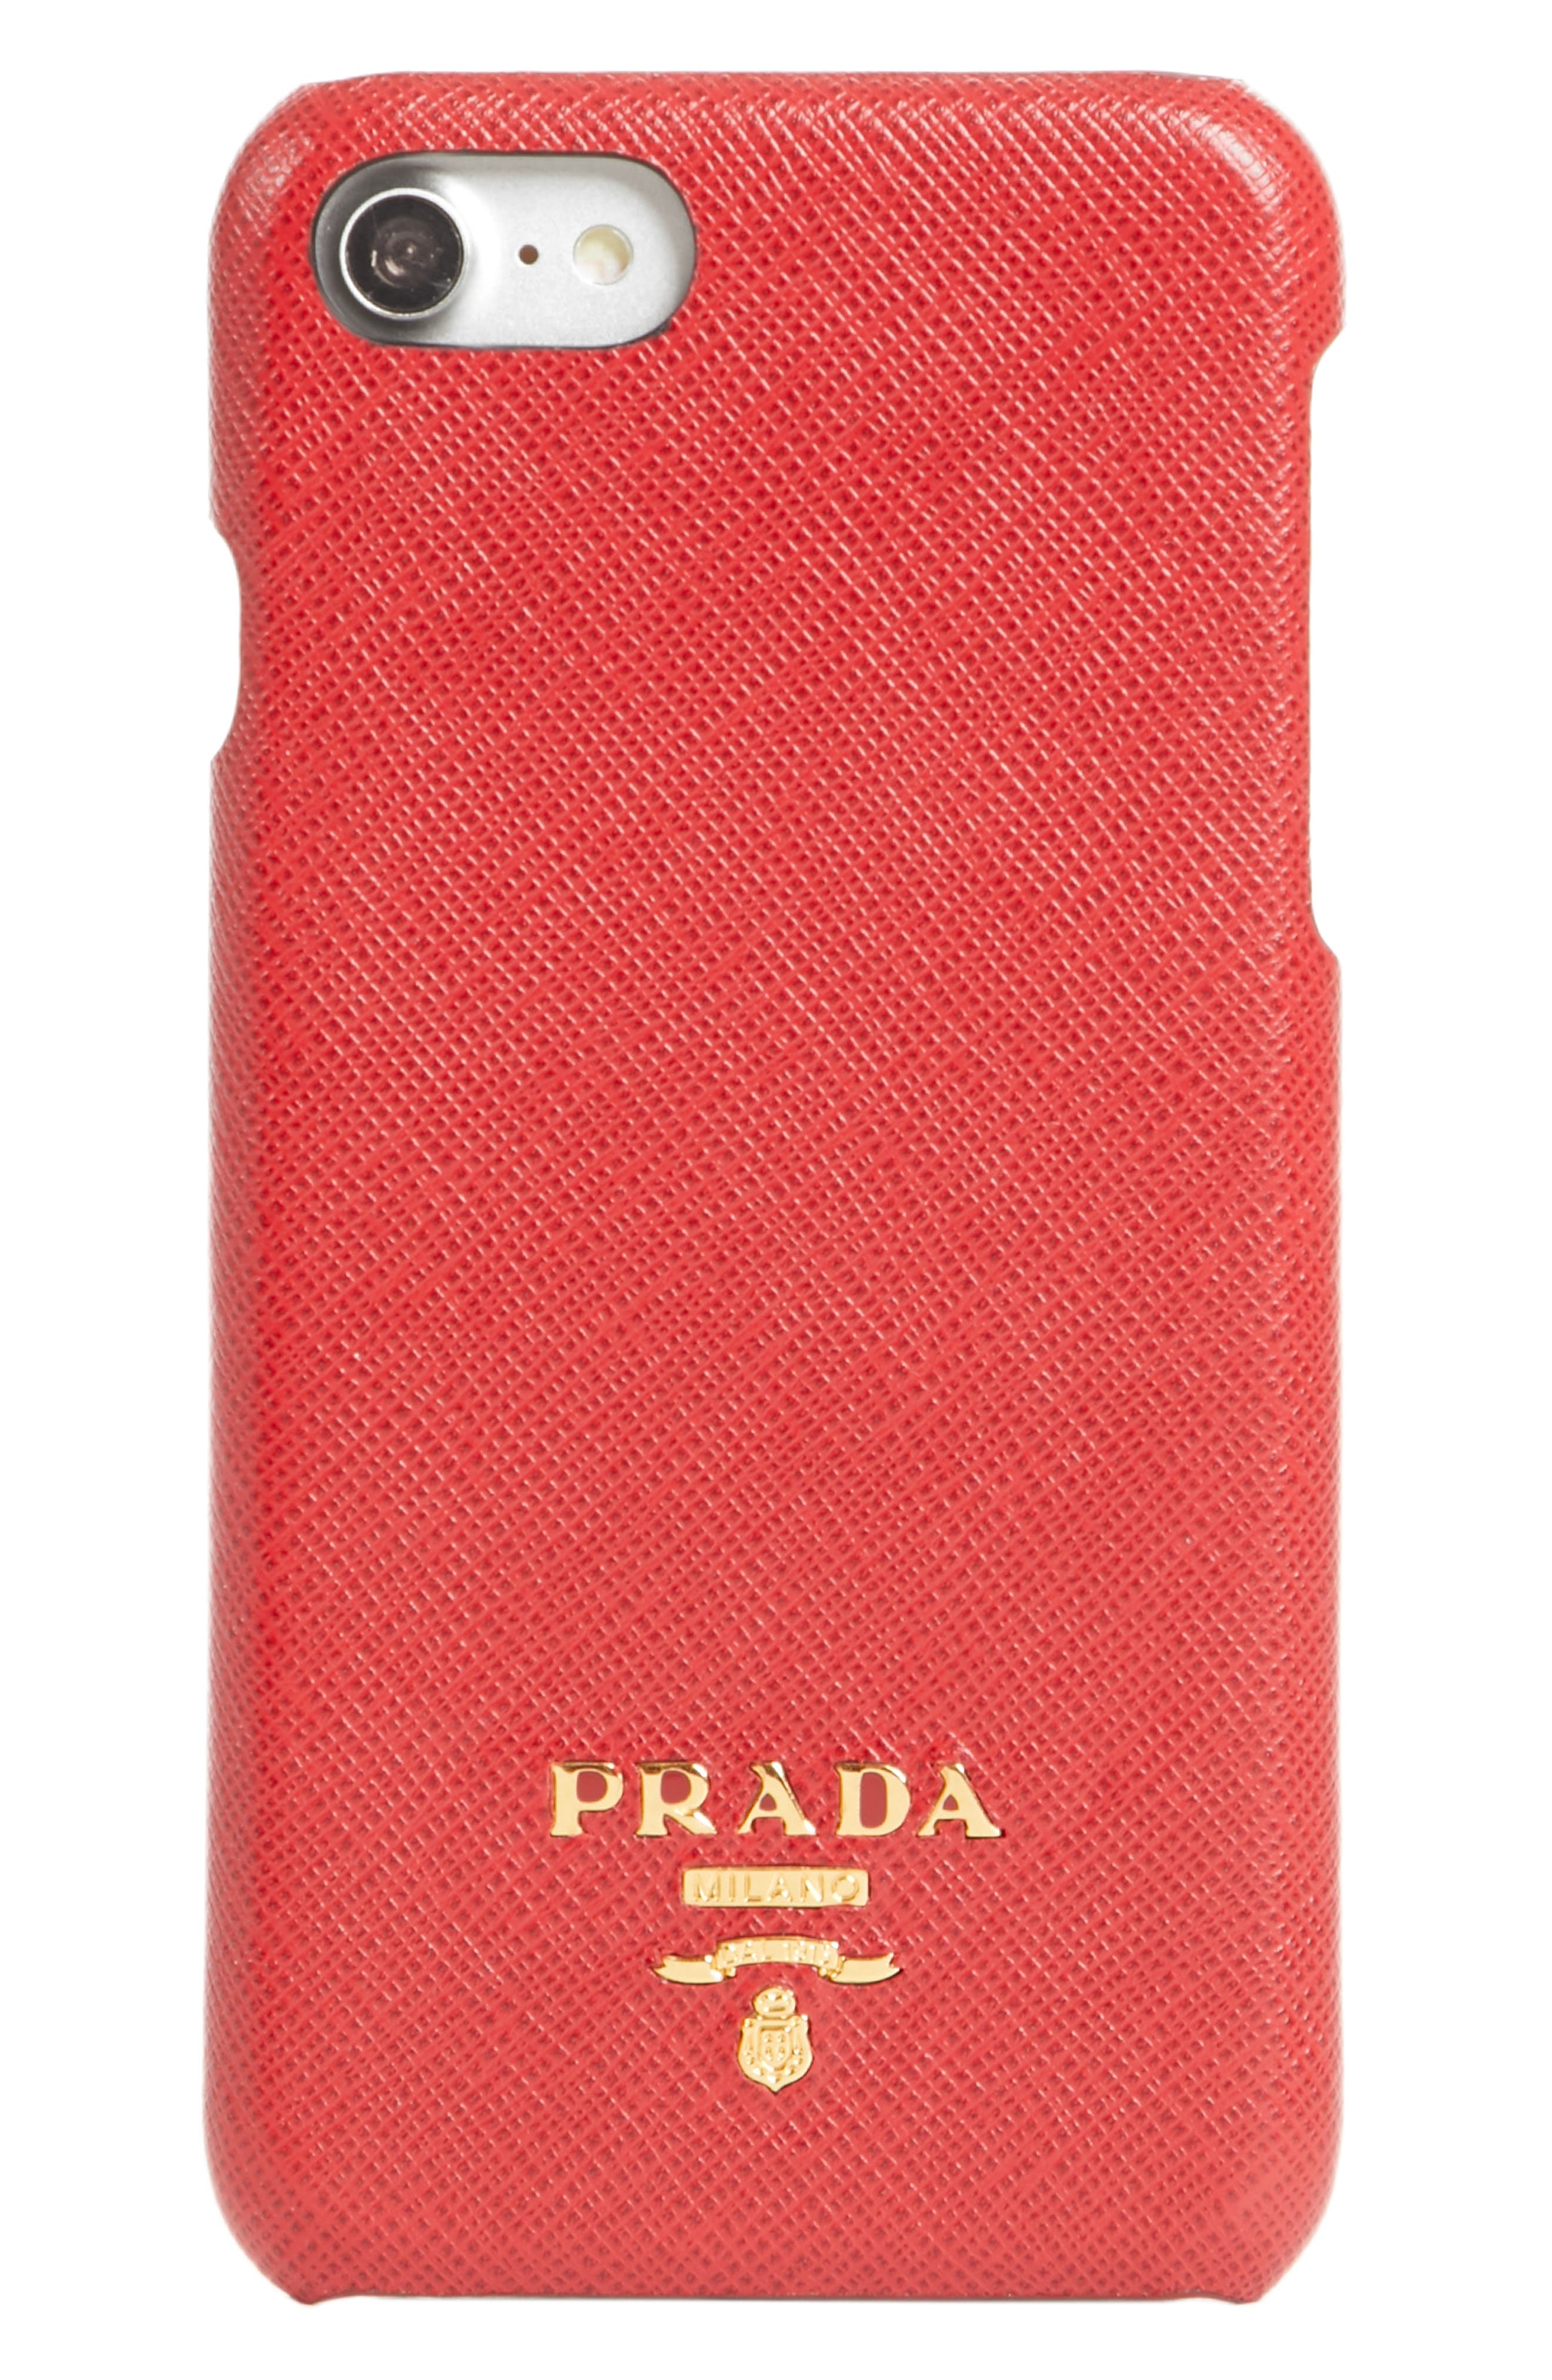 Prada Saffiano Metal Oro iPhone 7 Case